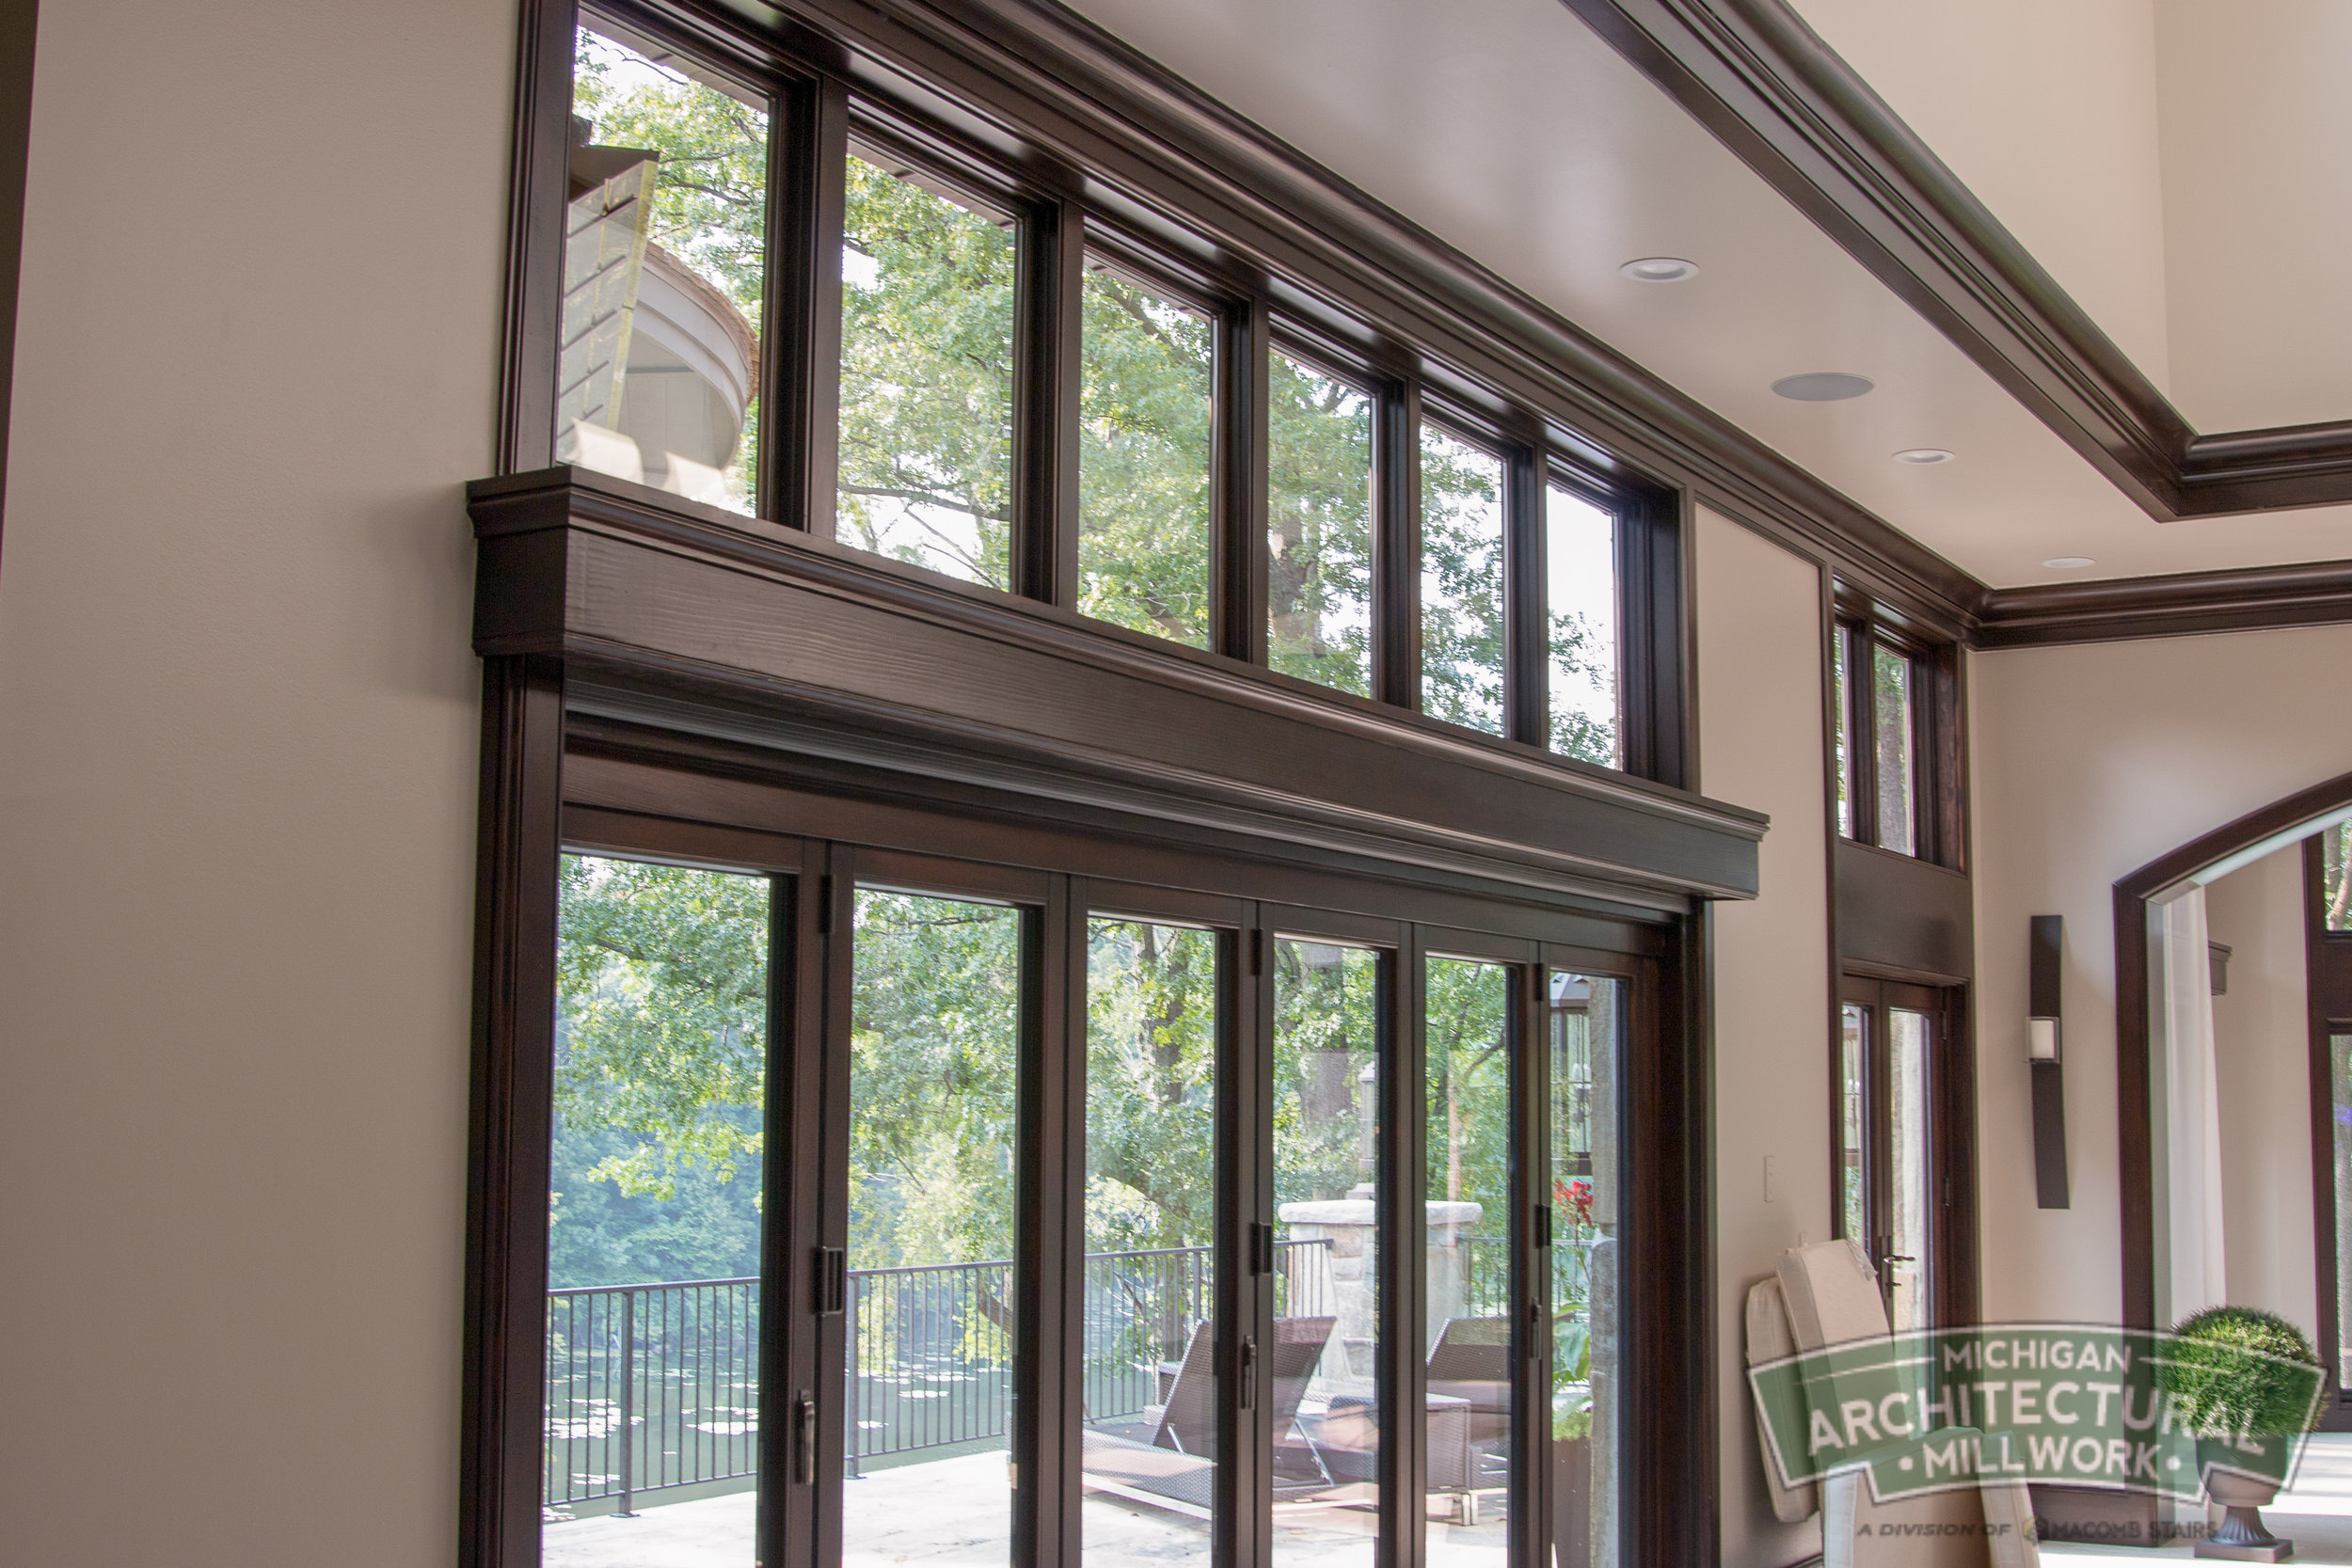 Michigan Architectural Millwork- Moulding and Millwork Photo-83.jpg